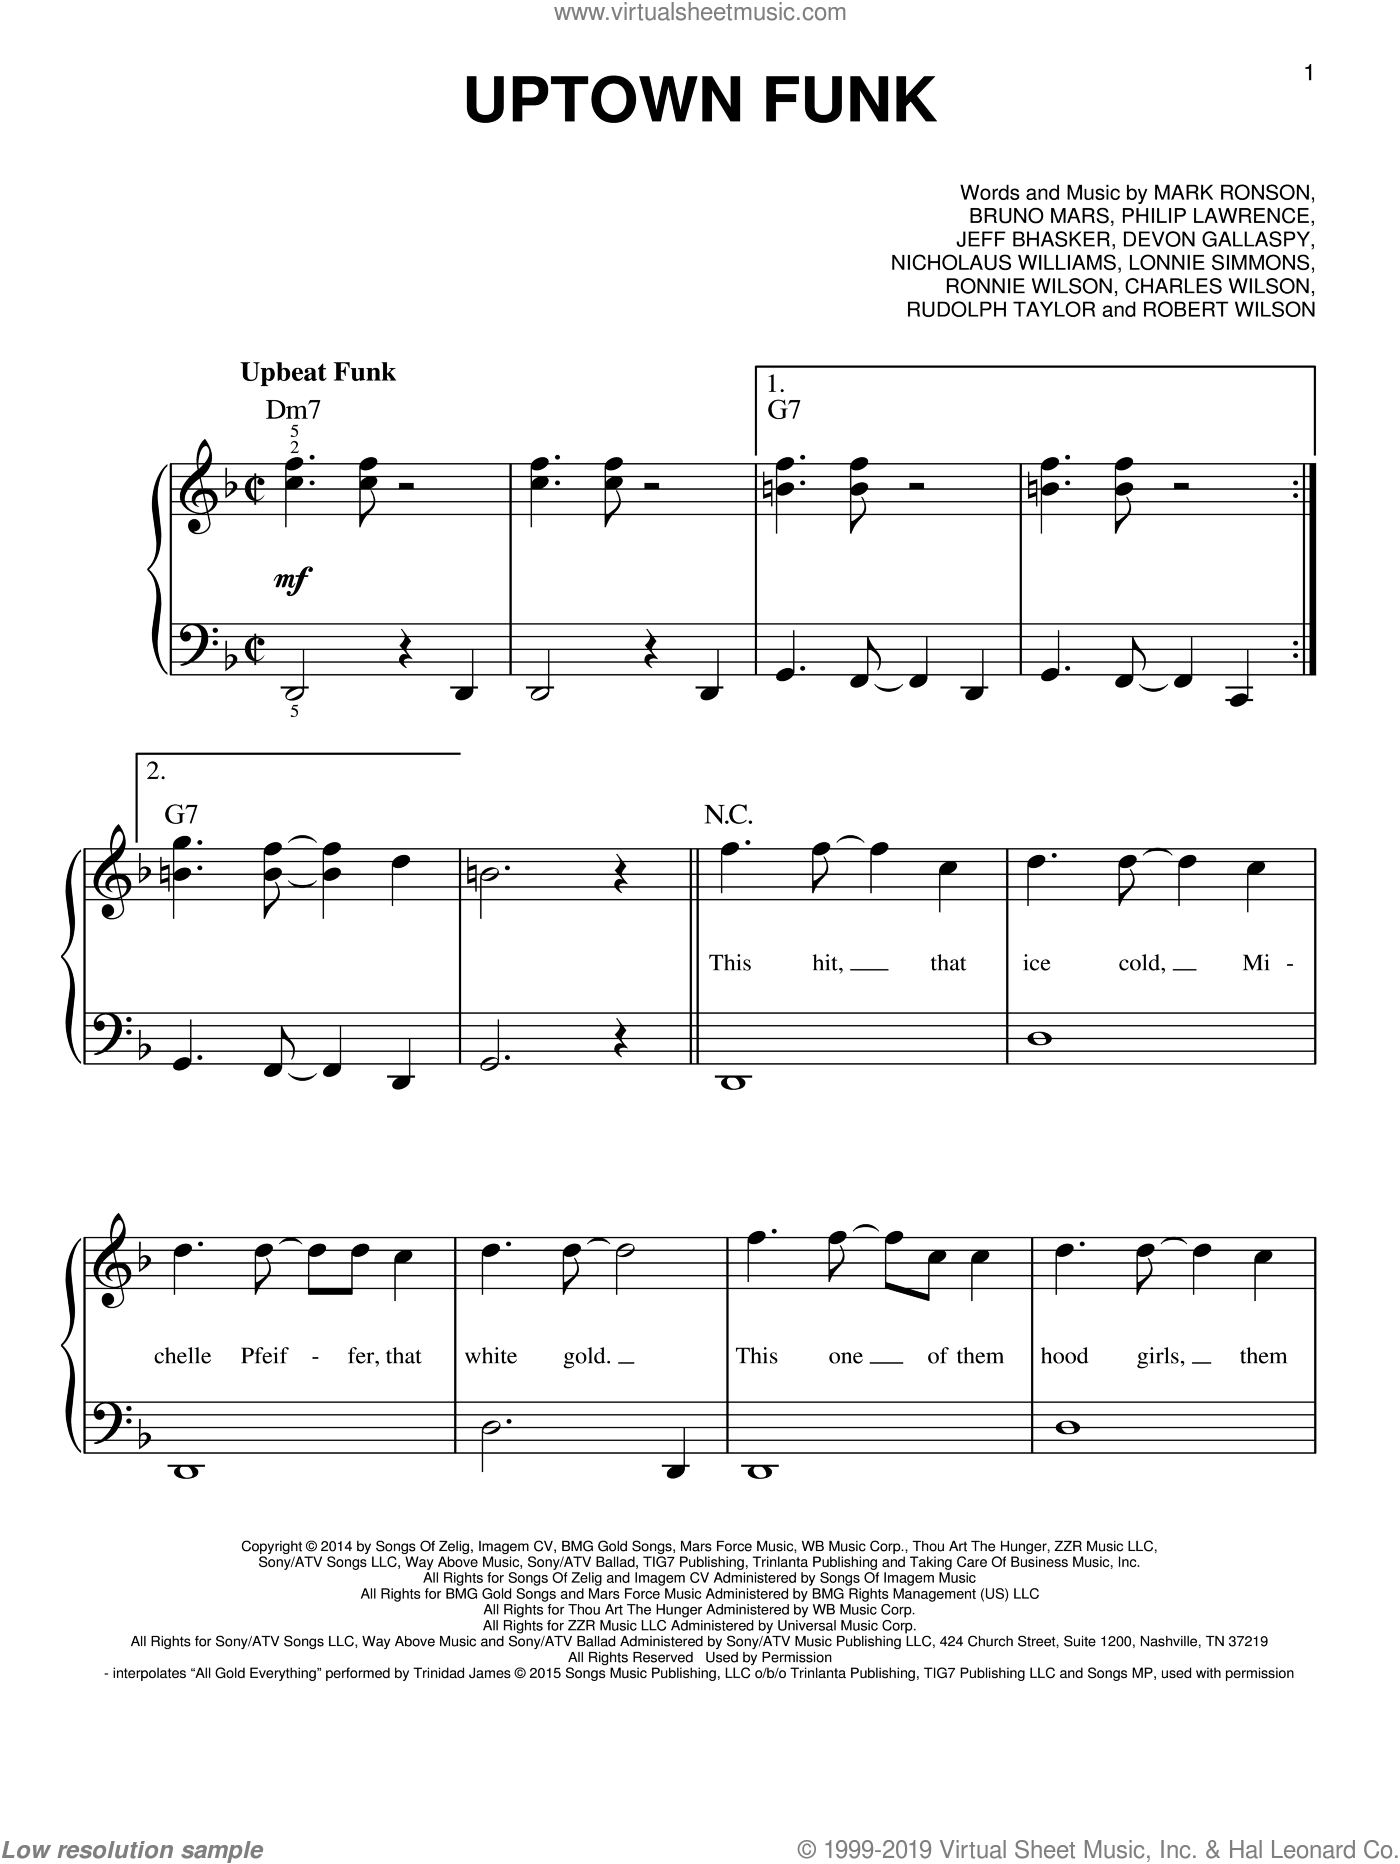 Uptown Funk (feat. Bruno Mars) sheet music for piano solo by Mark Ronson, Mark Ronson ft. Bruno Mars, Bruno Mars, Charles Wilson, Devon Gallaspy, Jeff Bhasker, Lonnie Simmons, Nicholaus Williams, Philip Lawrence, Robert Wilson, Ronnie Wilson and Rudolph Taylor, easy skill level